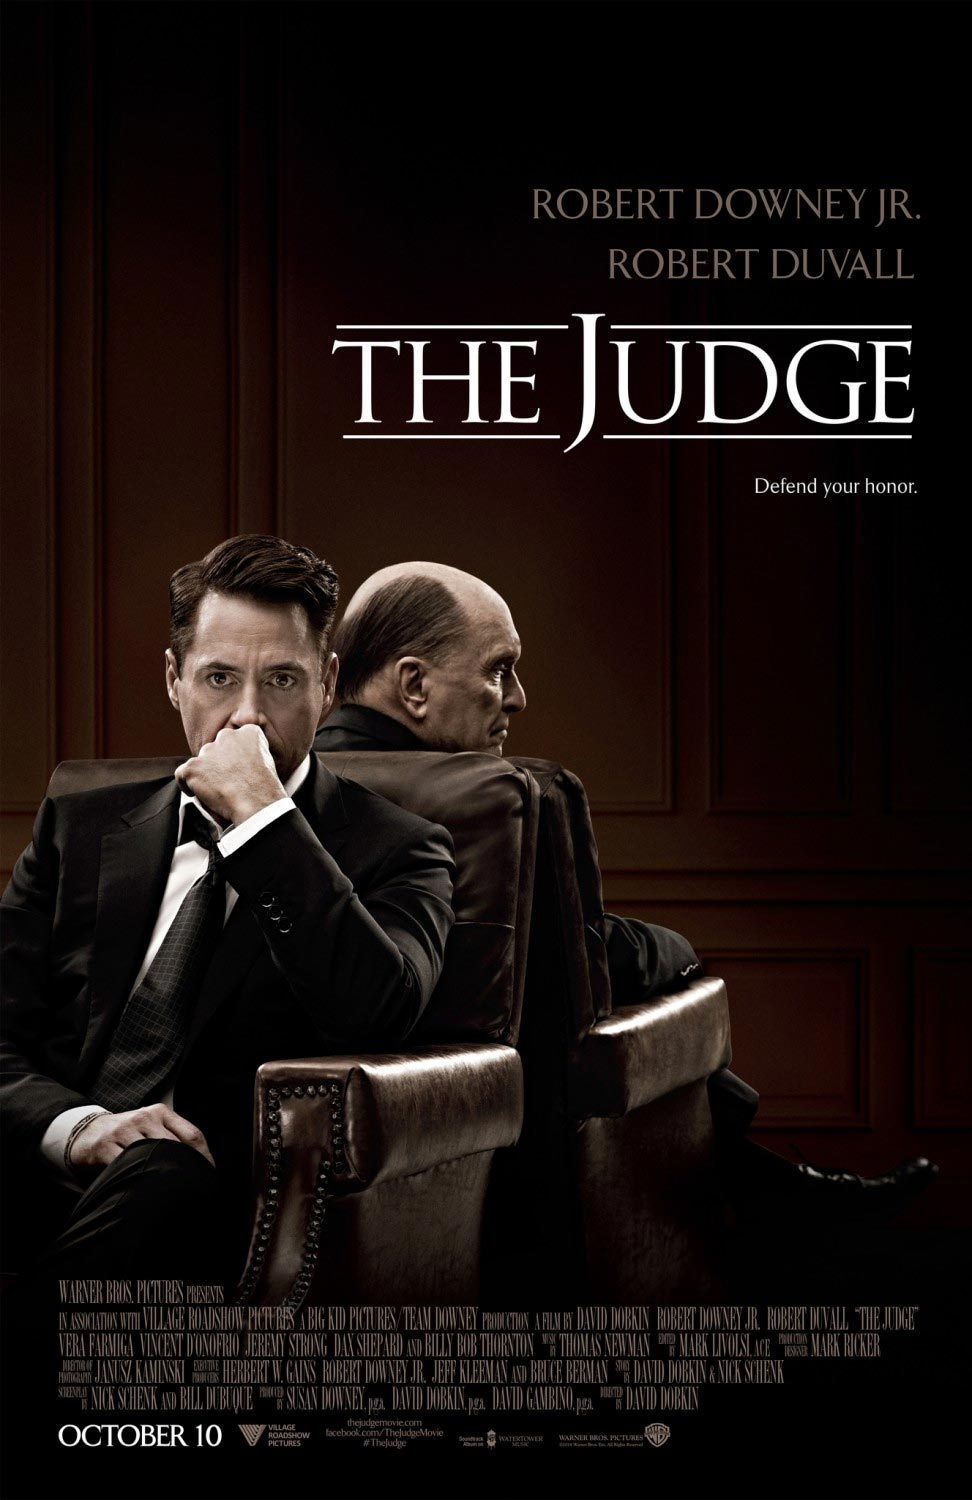 Affiche The Judge 975x1500 - Robert Downey Jr. est un avocat qui doit défendre son père dans le trailer de The Judge